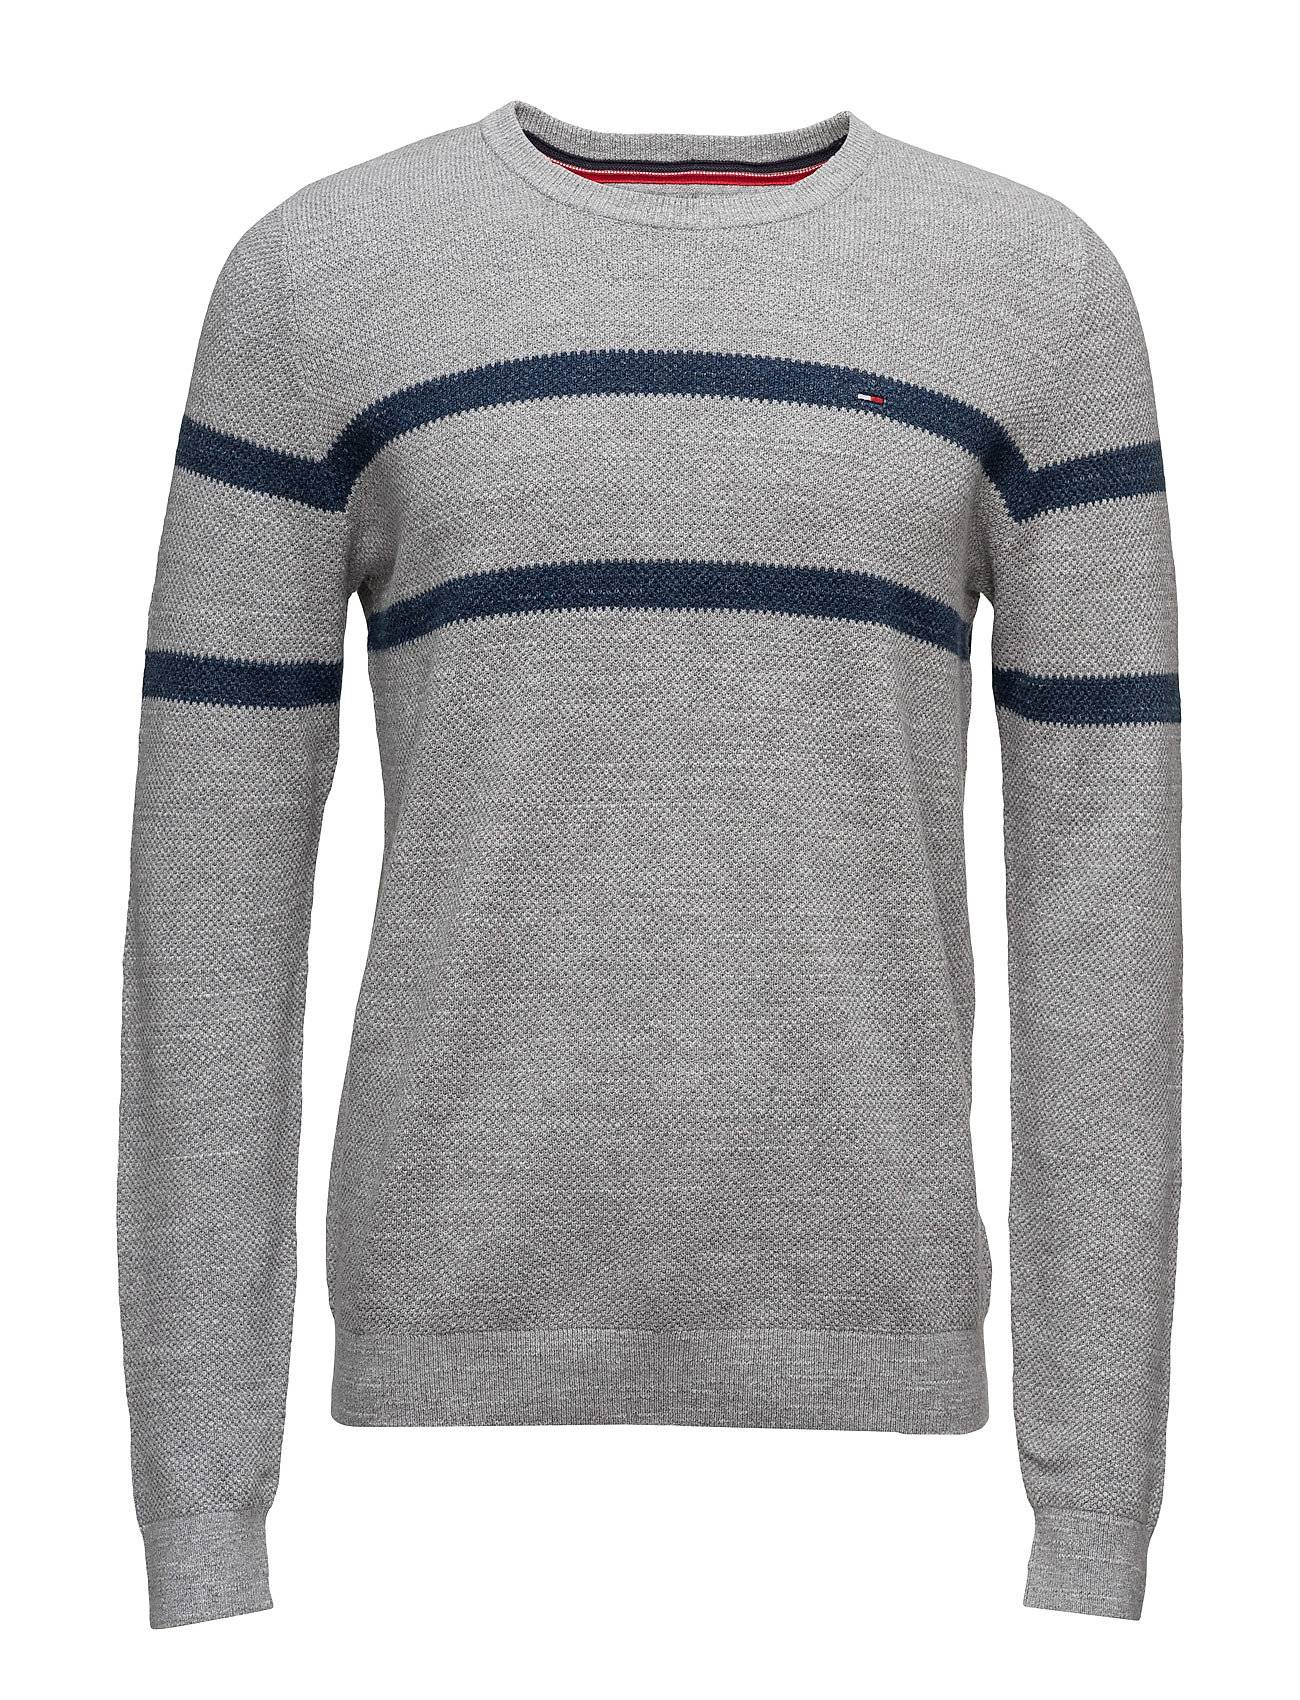 Tommy Jeans Thdm Basic Stp Cn Sweater 21